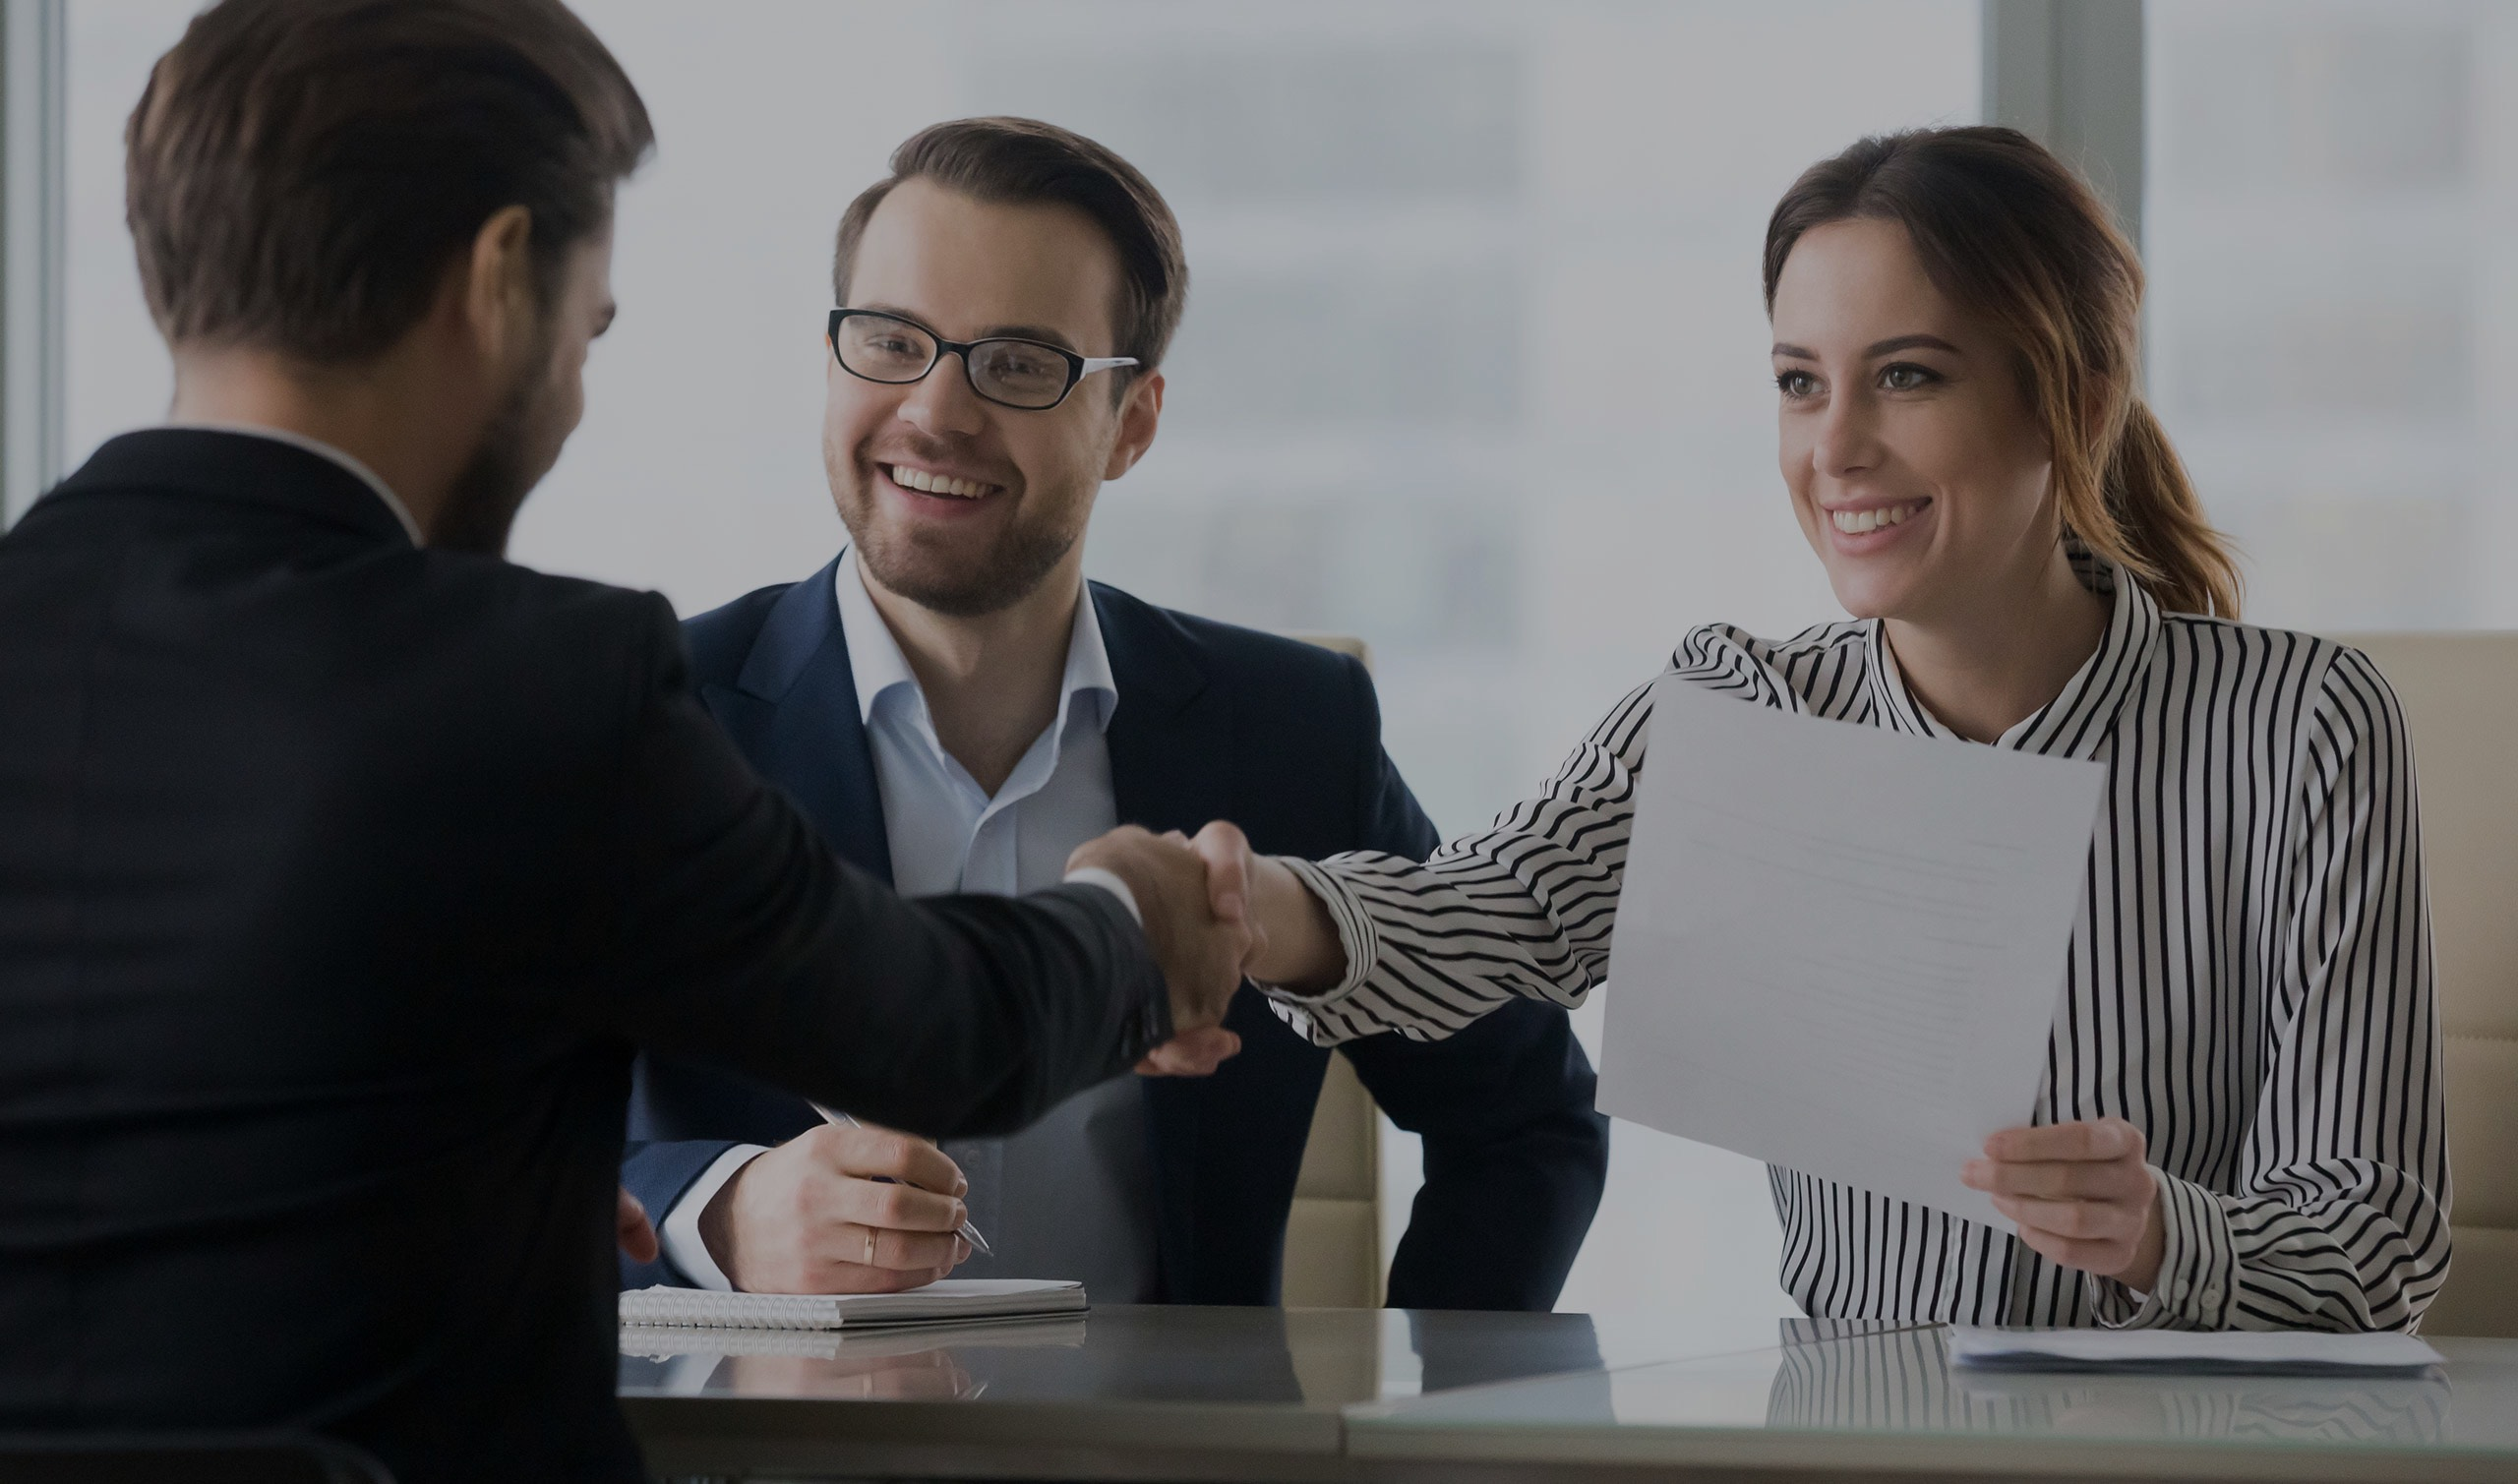 We connect people and job opportunities